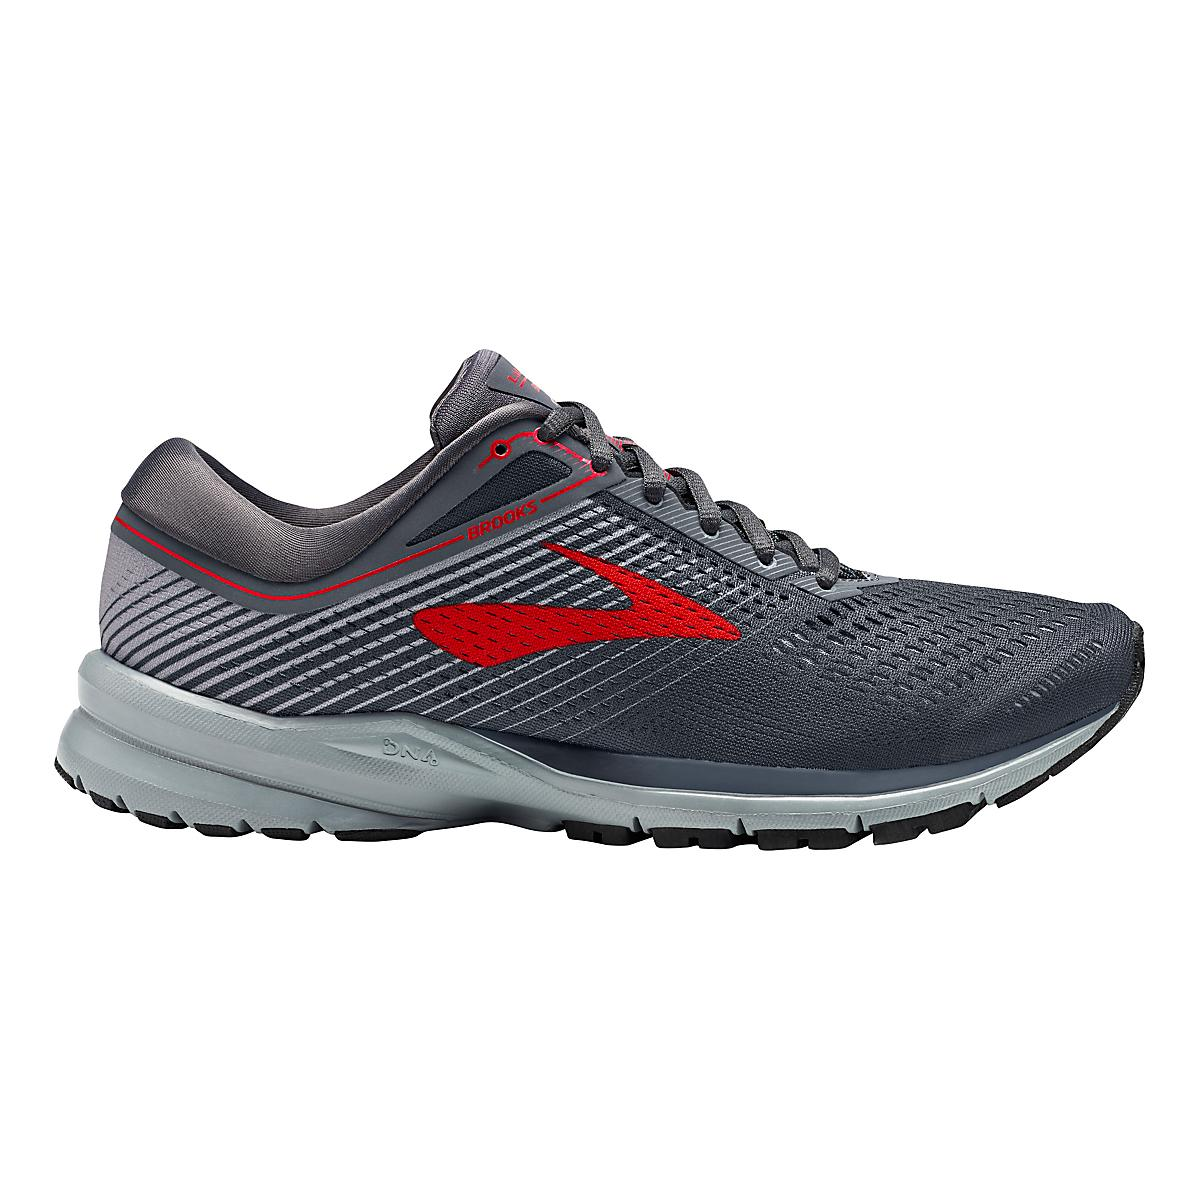 59e982c29c1 Mens Brooks Launch 5 Running Shoe at Road Runner Sports